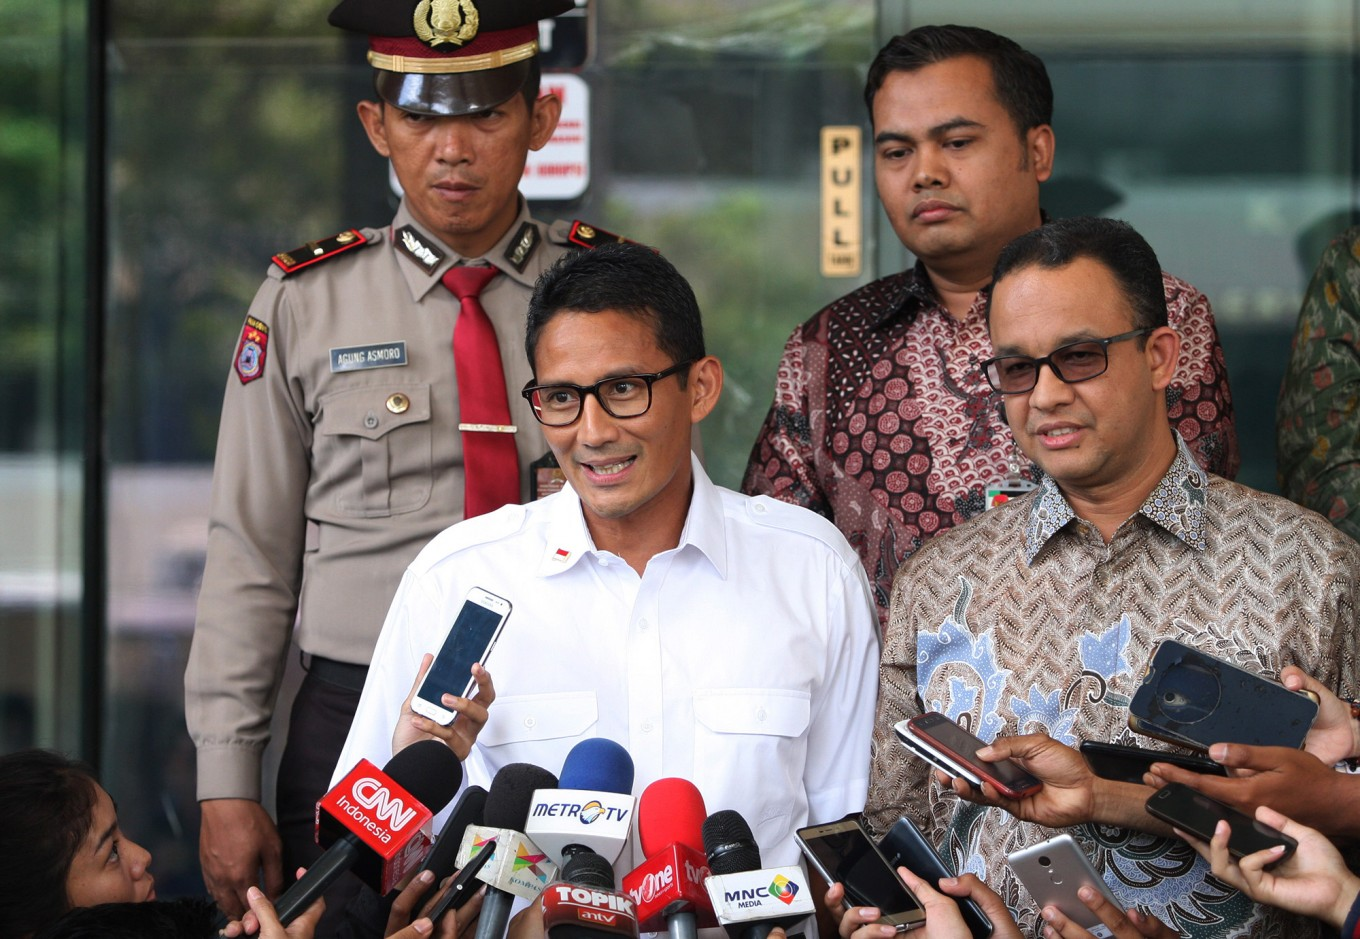 Anies, Sandiaga promise more city cleaners